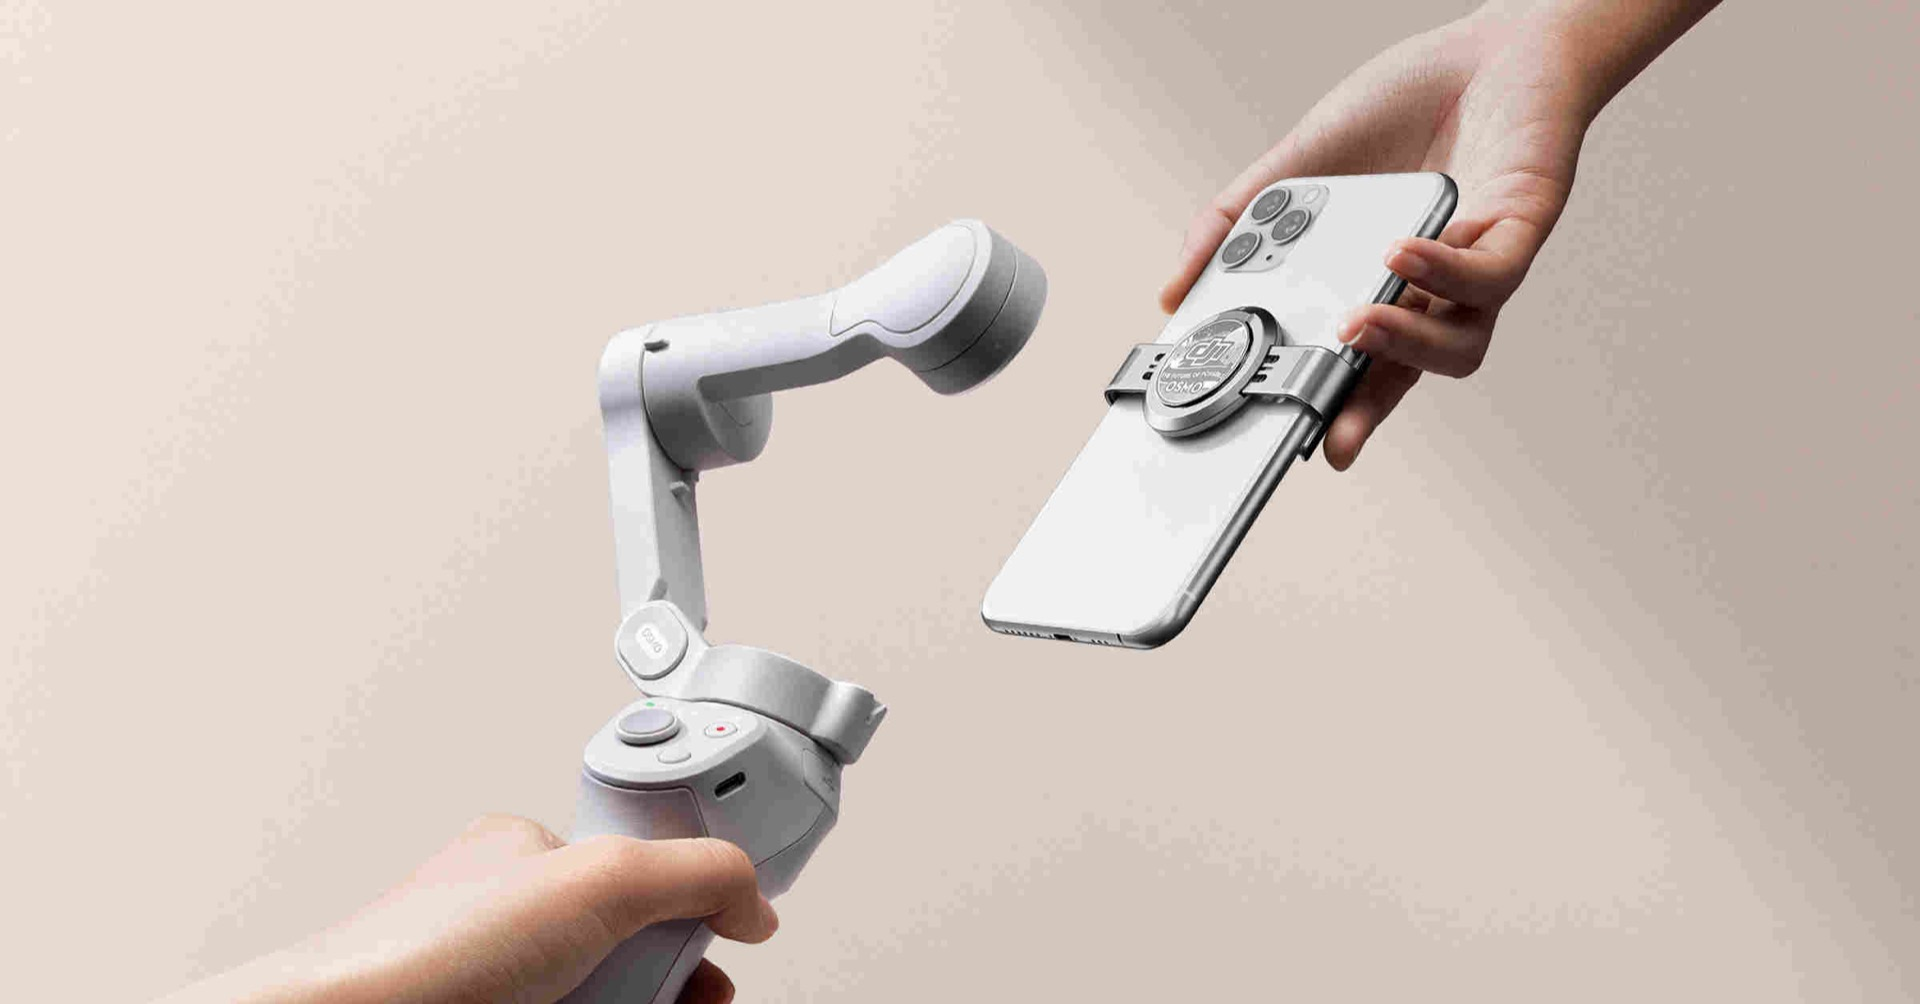 DJI OM 4 Smartphone Stabilizer with a Magnetic Mount - Newsshooter